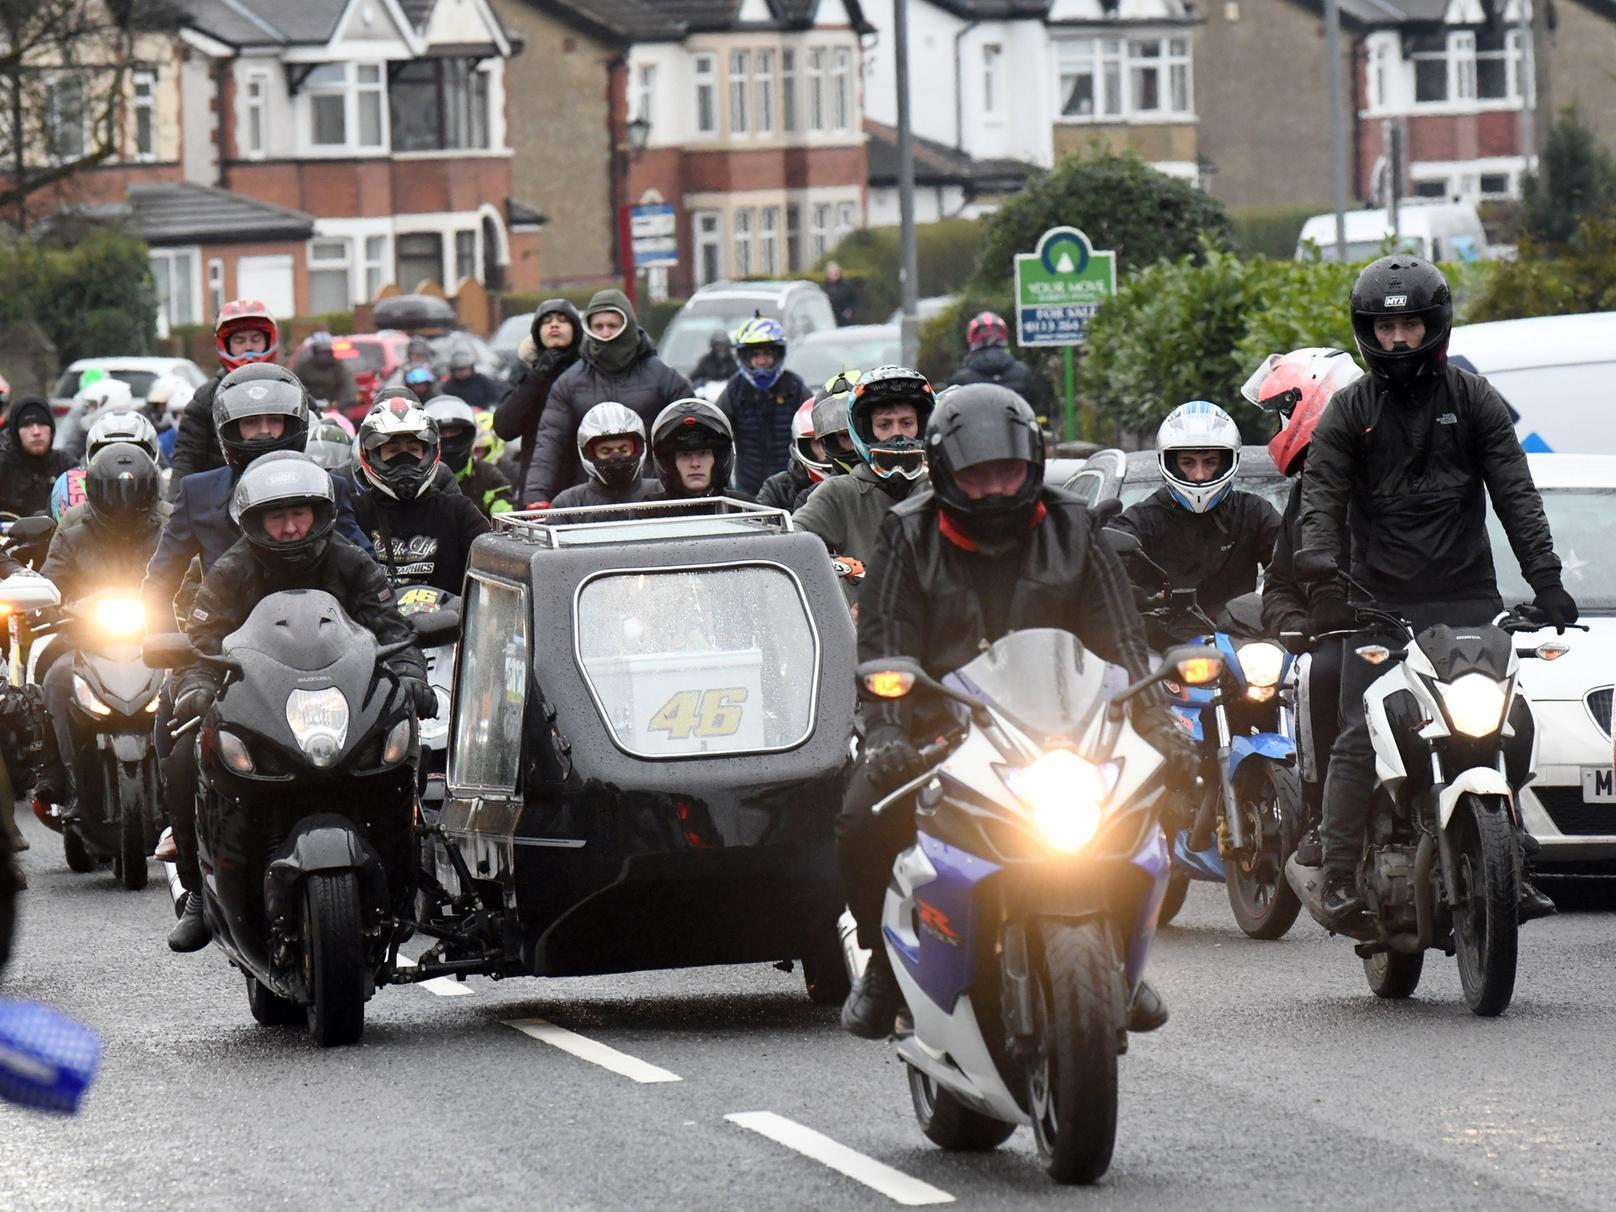 'The most perfect boy': Hundreds of bikers take to Leeds streets to honour 19-year-old biker on 'his final ride'